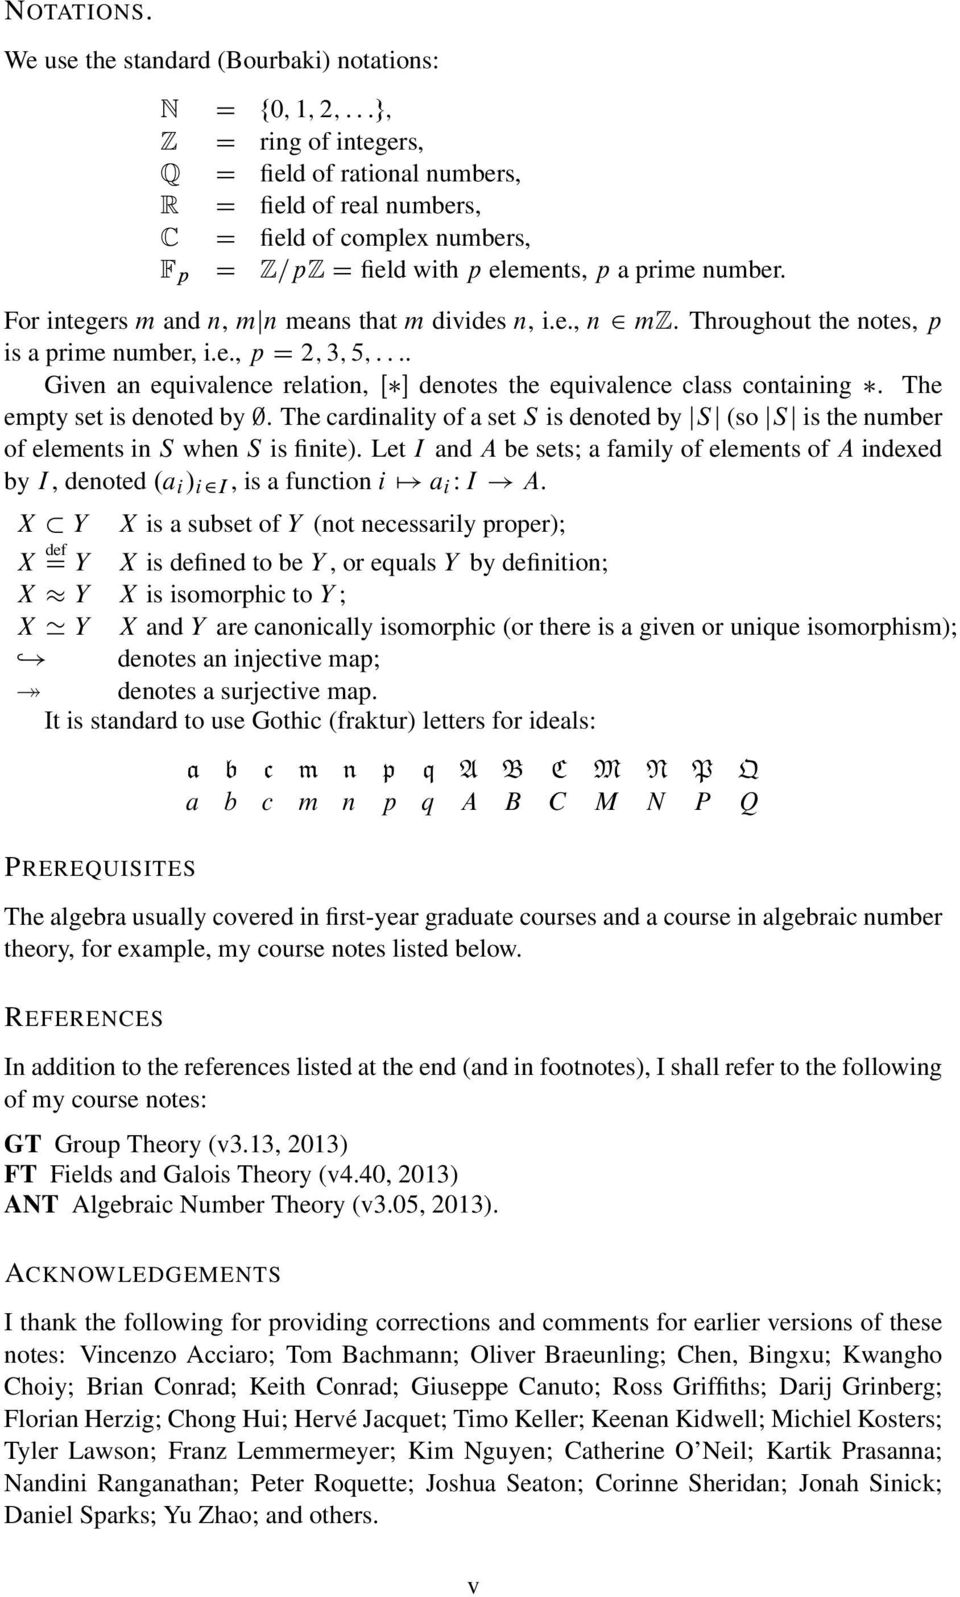 elements, p a prime number. For integers m and n, mjn means that m divides n, i.e., n 2 mz. Throughout the notes, p is a prime number, i.e., p D 2; 3; 5; : : :.